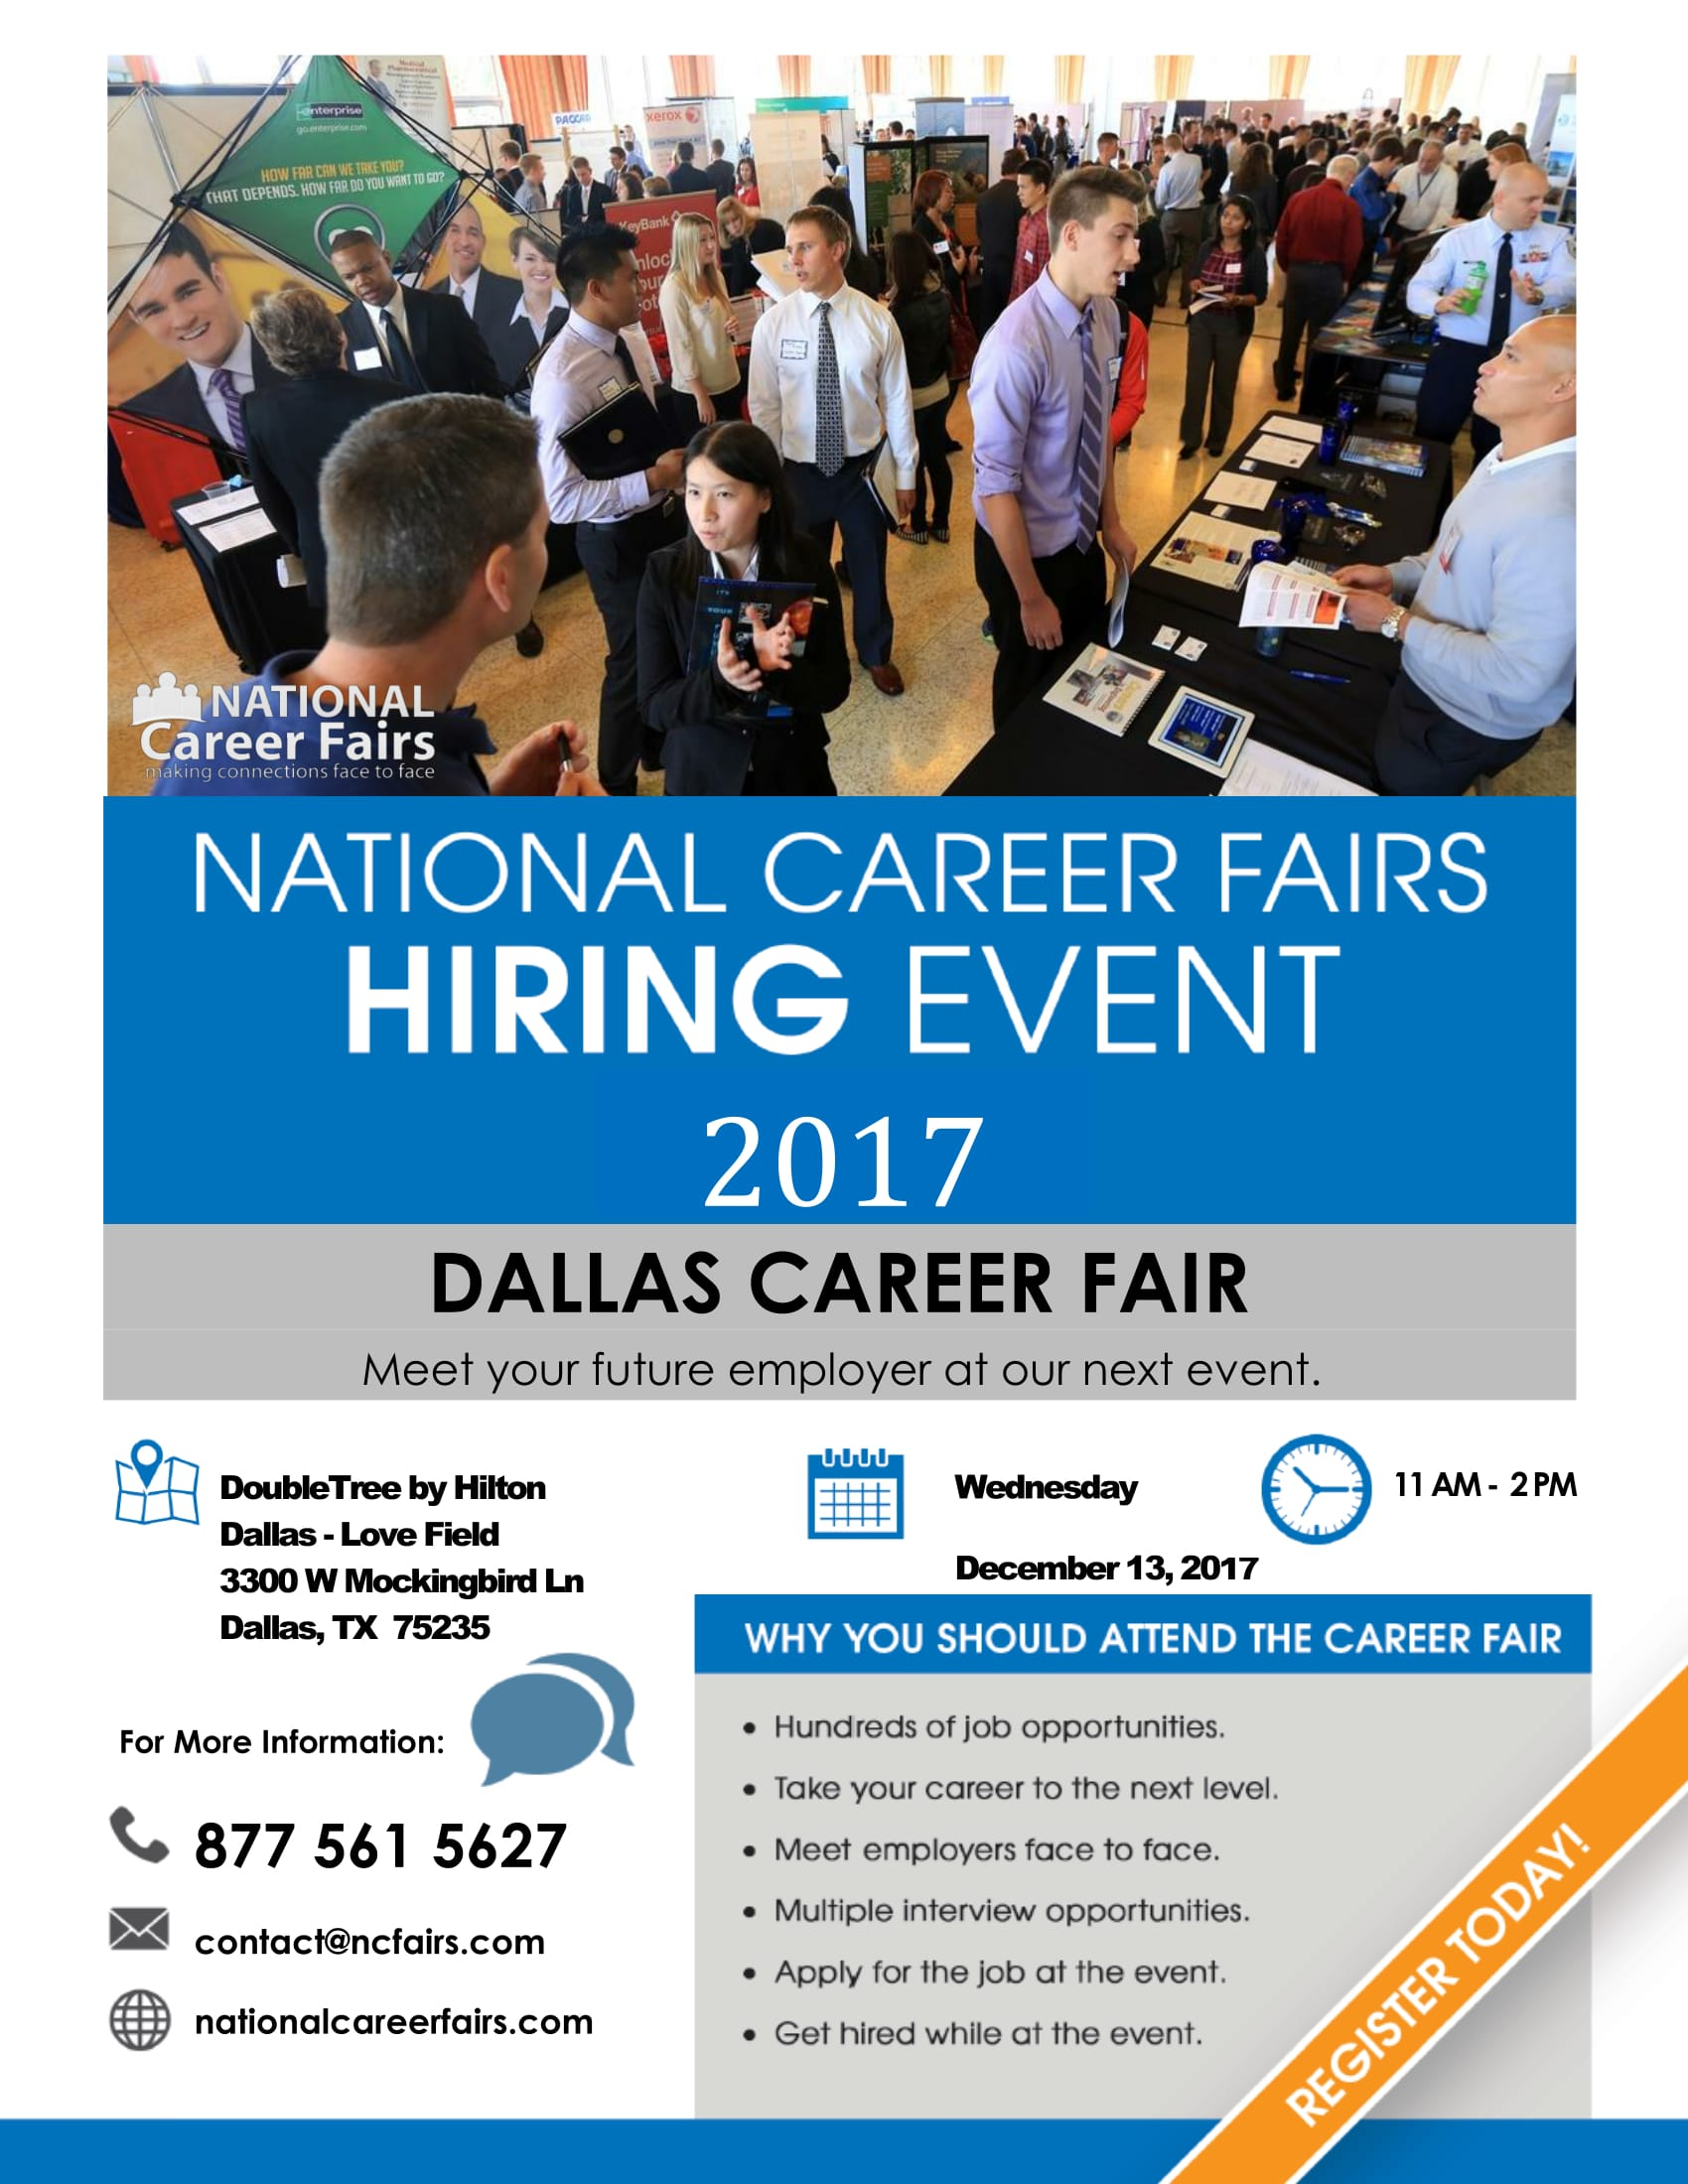 National Career Fairs Hiring Event